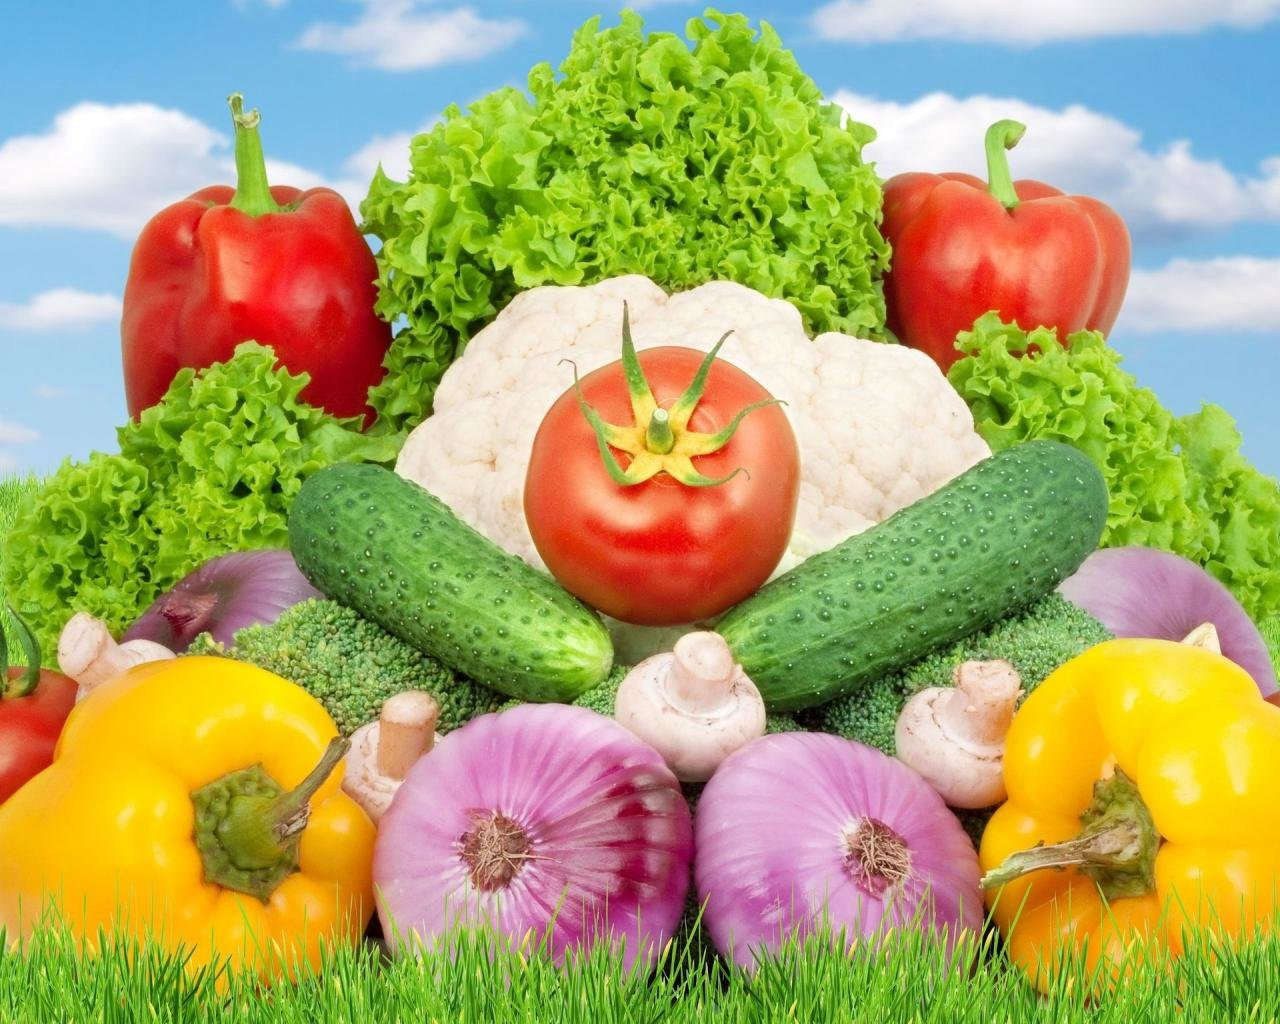 Download hd 1280x1024 Vegetables PC background ID:114700 for free